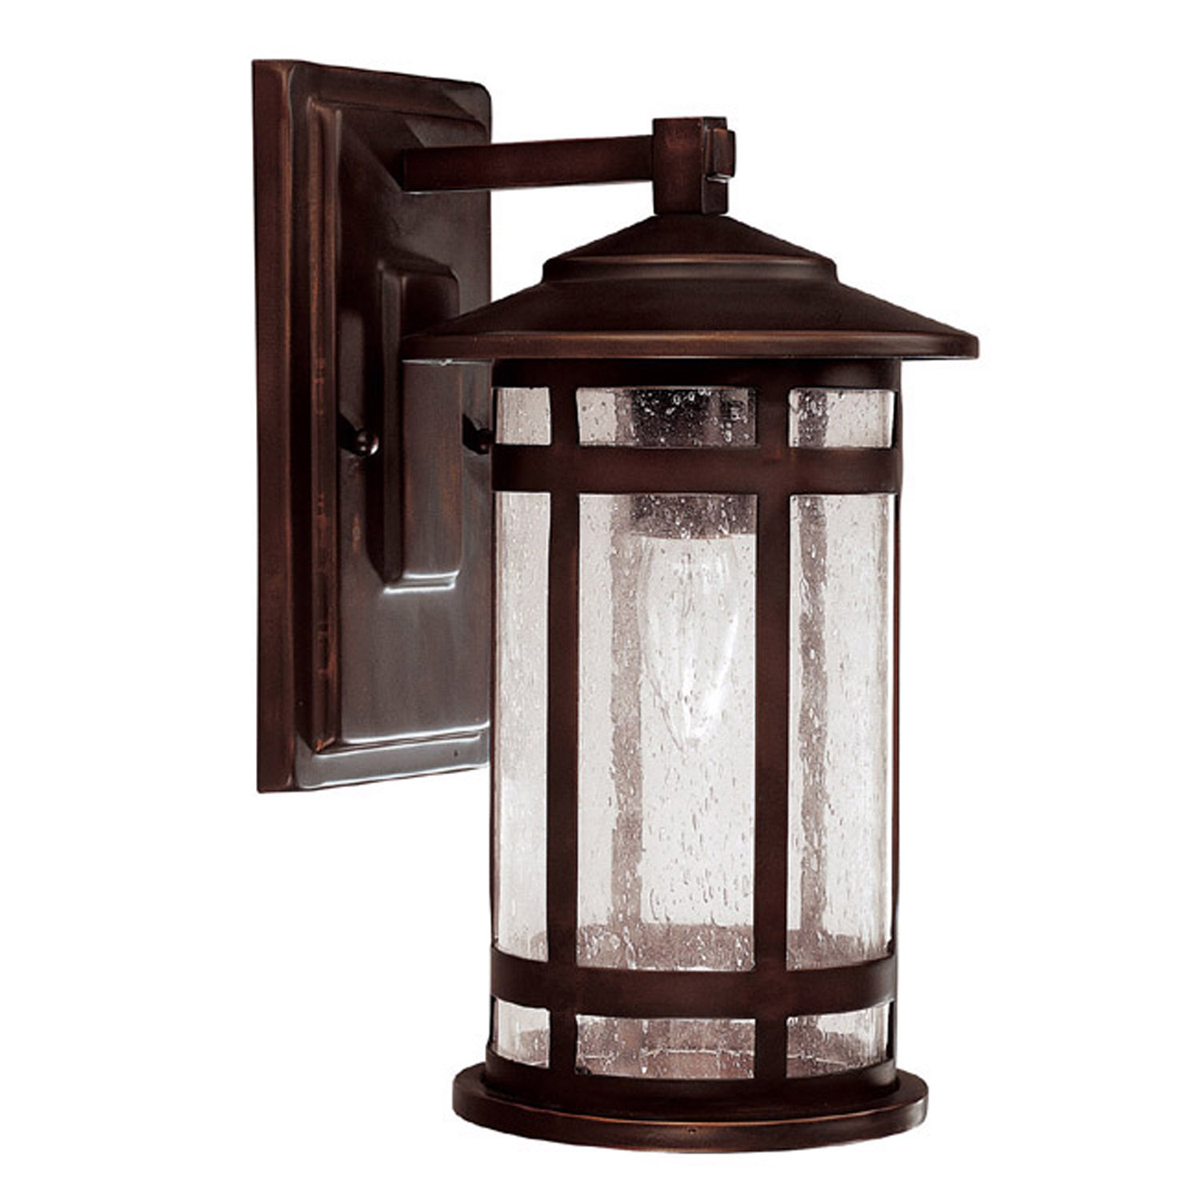 Capital Lighting (9951) Mission Hills Single Light Outdoor Wall Fixture